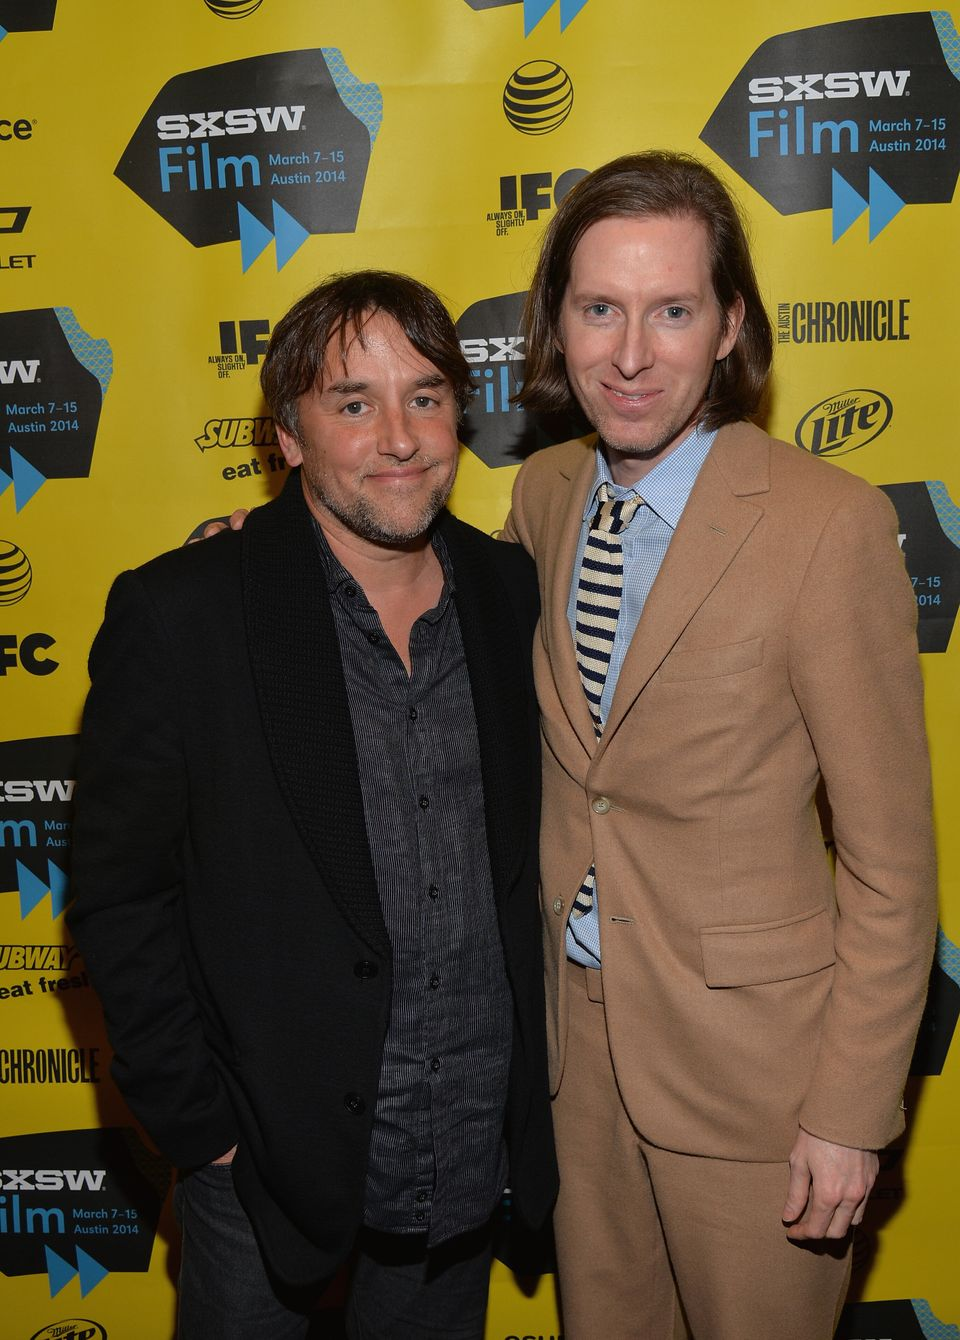 AUSTIN, TX - MARCH 10:  Directors Richard Linklater (L) and Wes Anderson attend the screening of 'Grand Budapest Hotel' durin